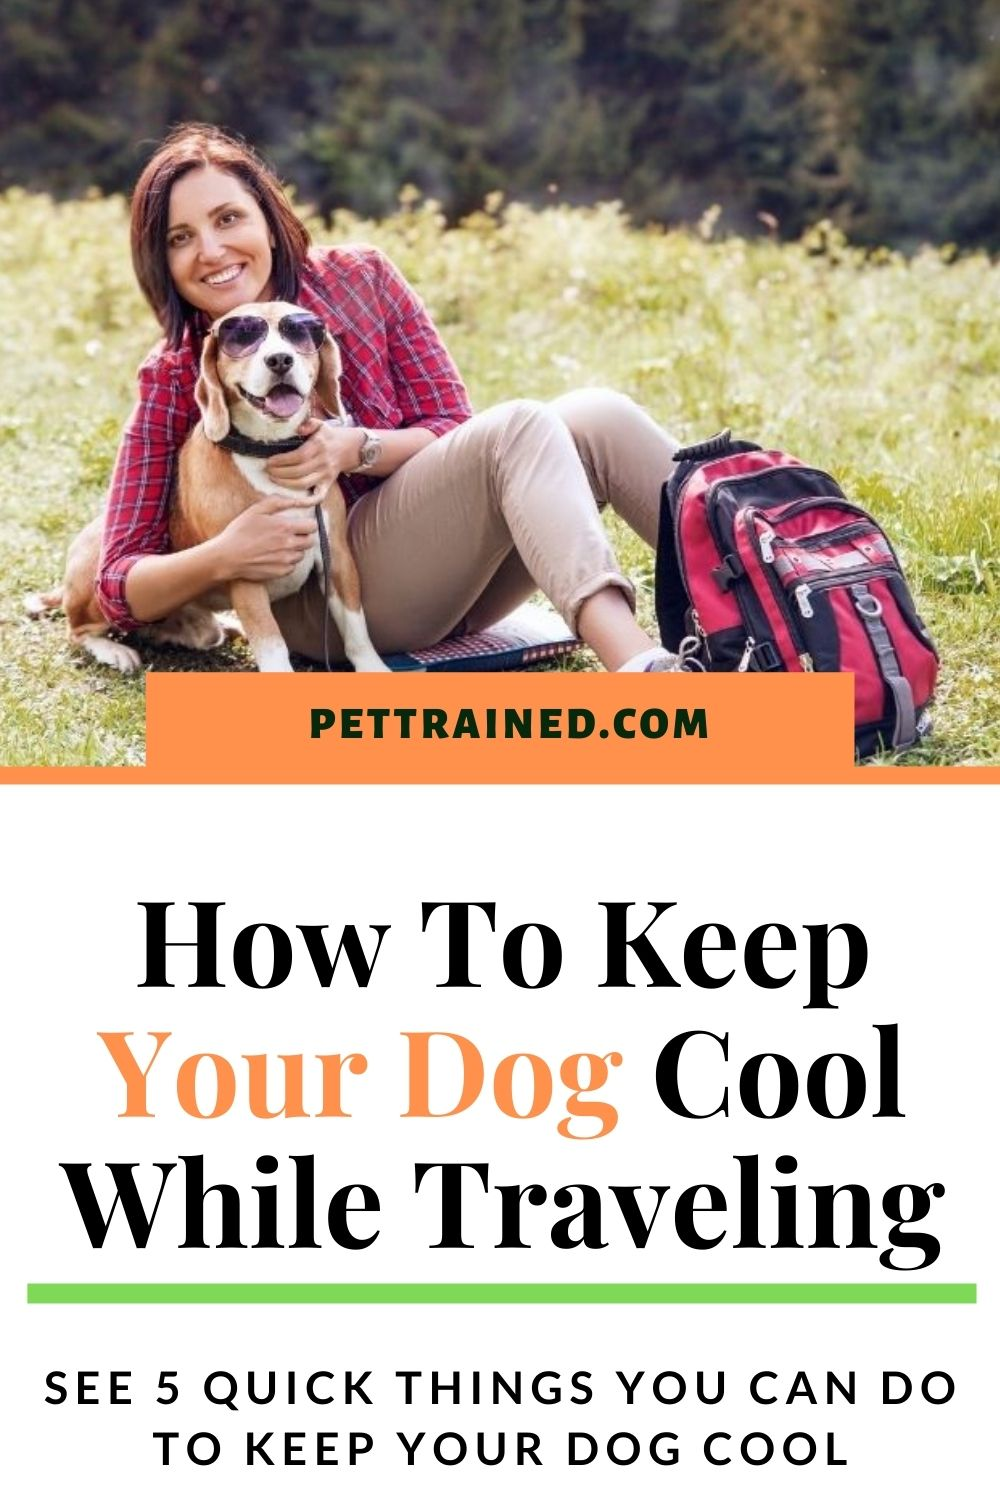 How to keep a dog cool on a trip